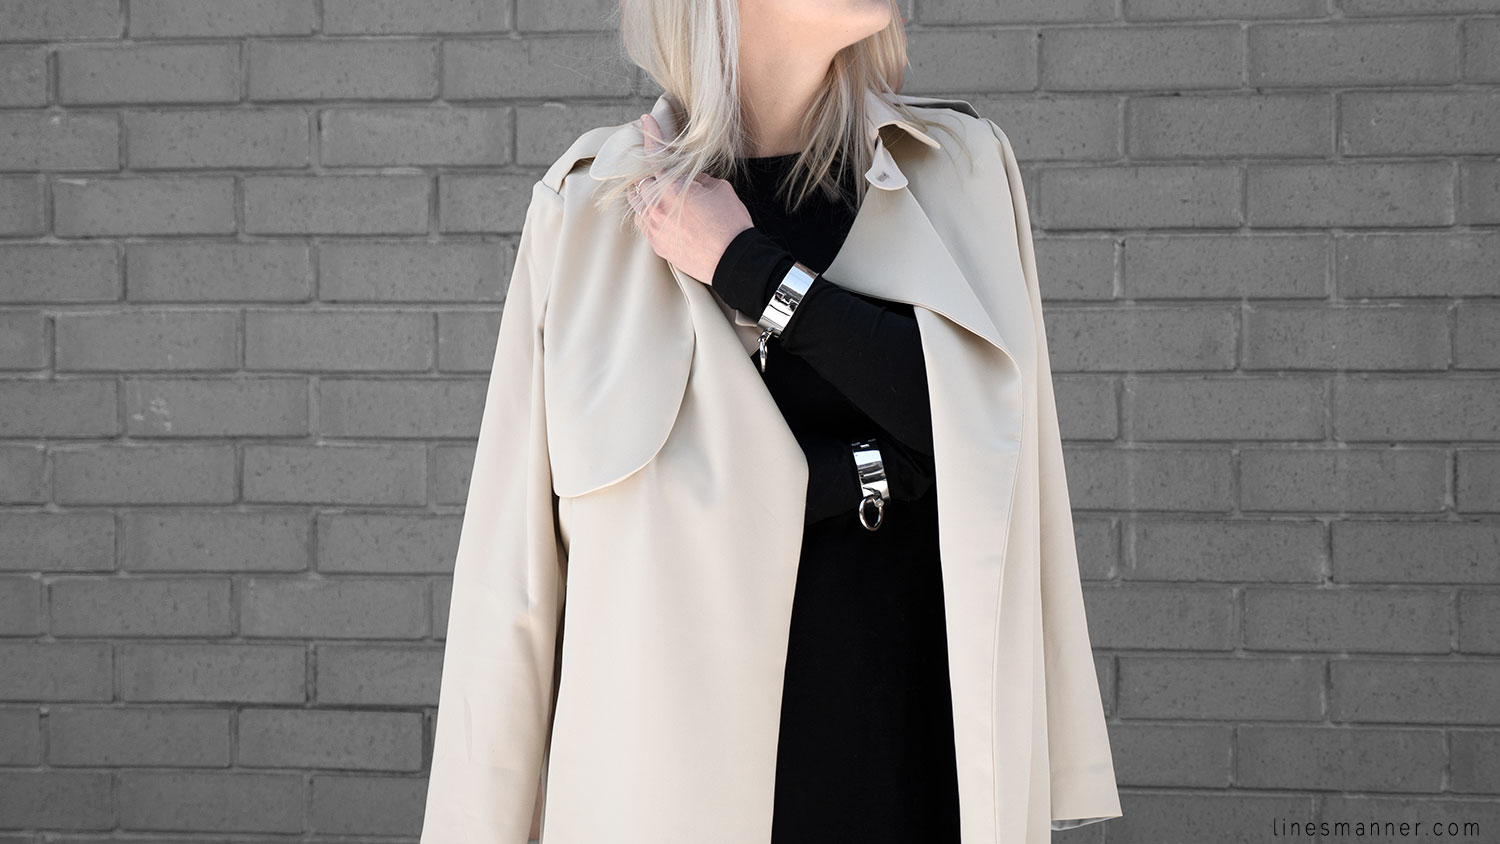 Lines-Manner-Trench-Minimal-Outfits-Fashion-Essentials-Classics-Timeless-Versatile-Details-Hues-Nonchalance-Elegance-Casual-Effortless-14